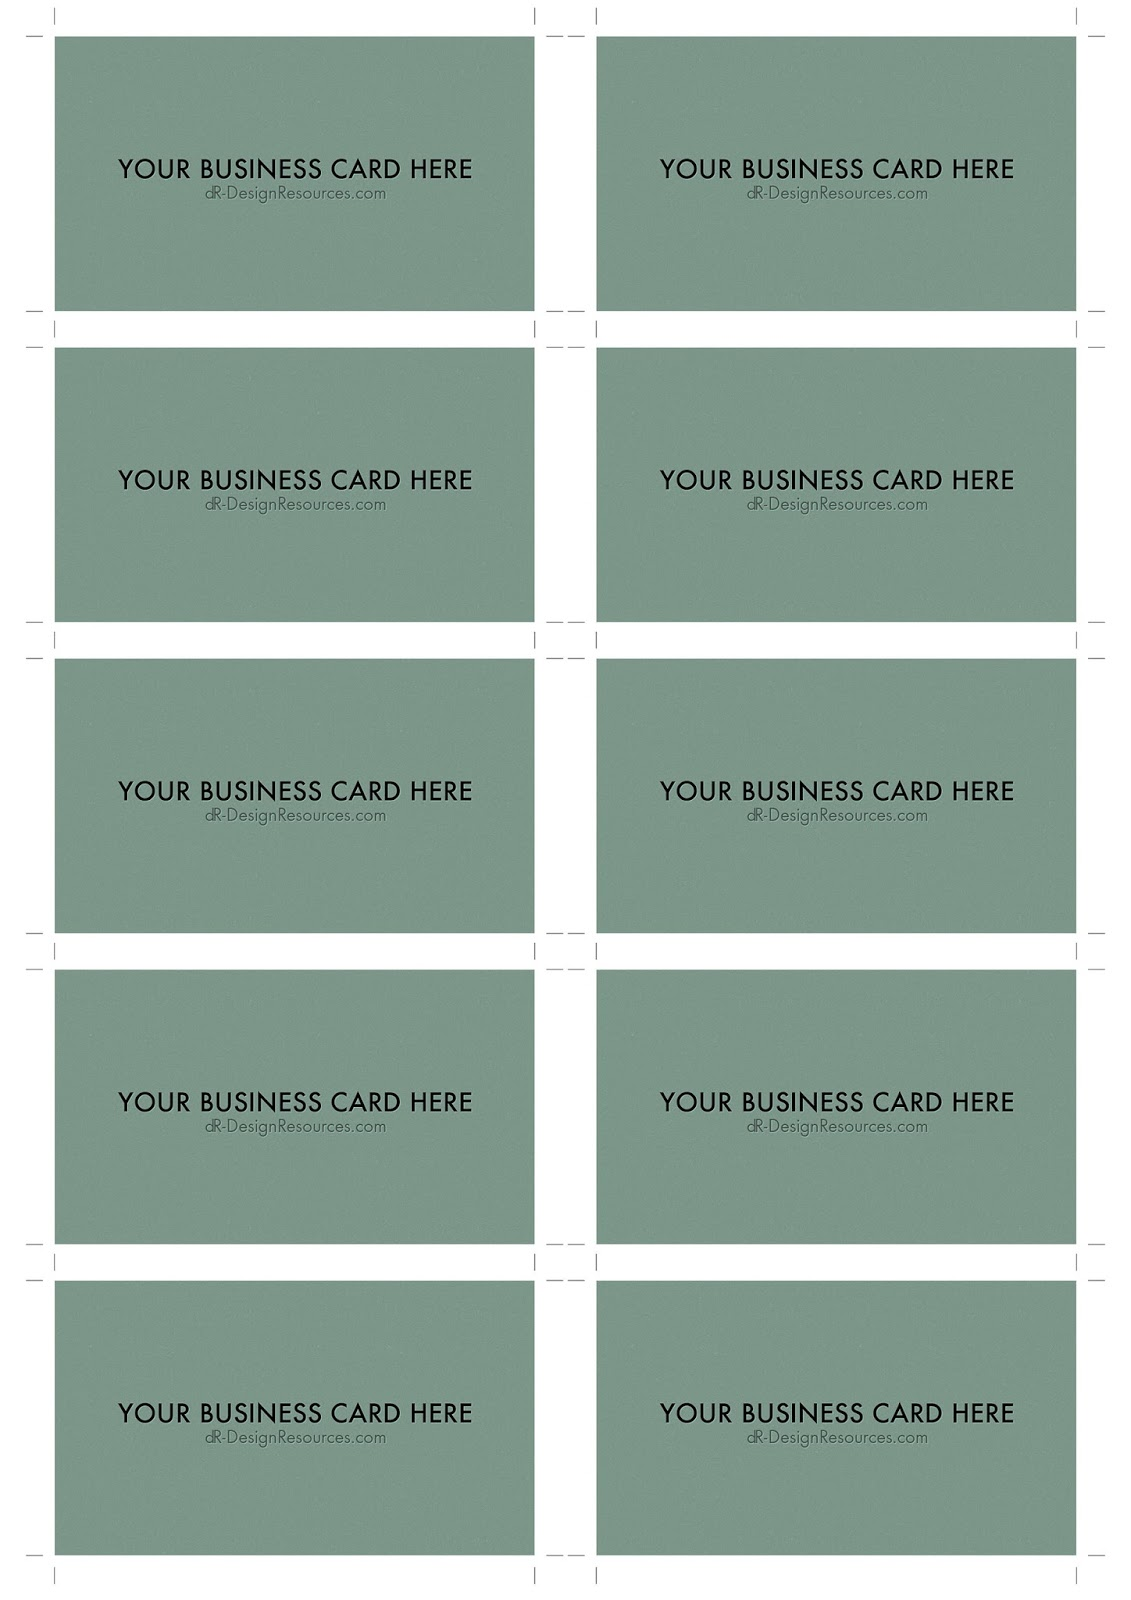 Free photoshop tutorials a4 business card template psd 10 per sheet cheaphphosting Images